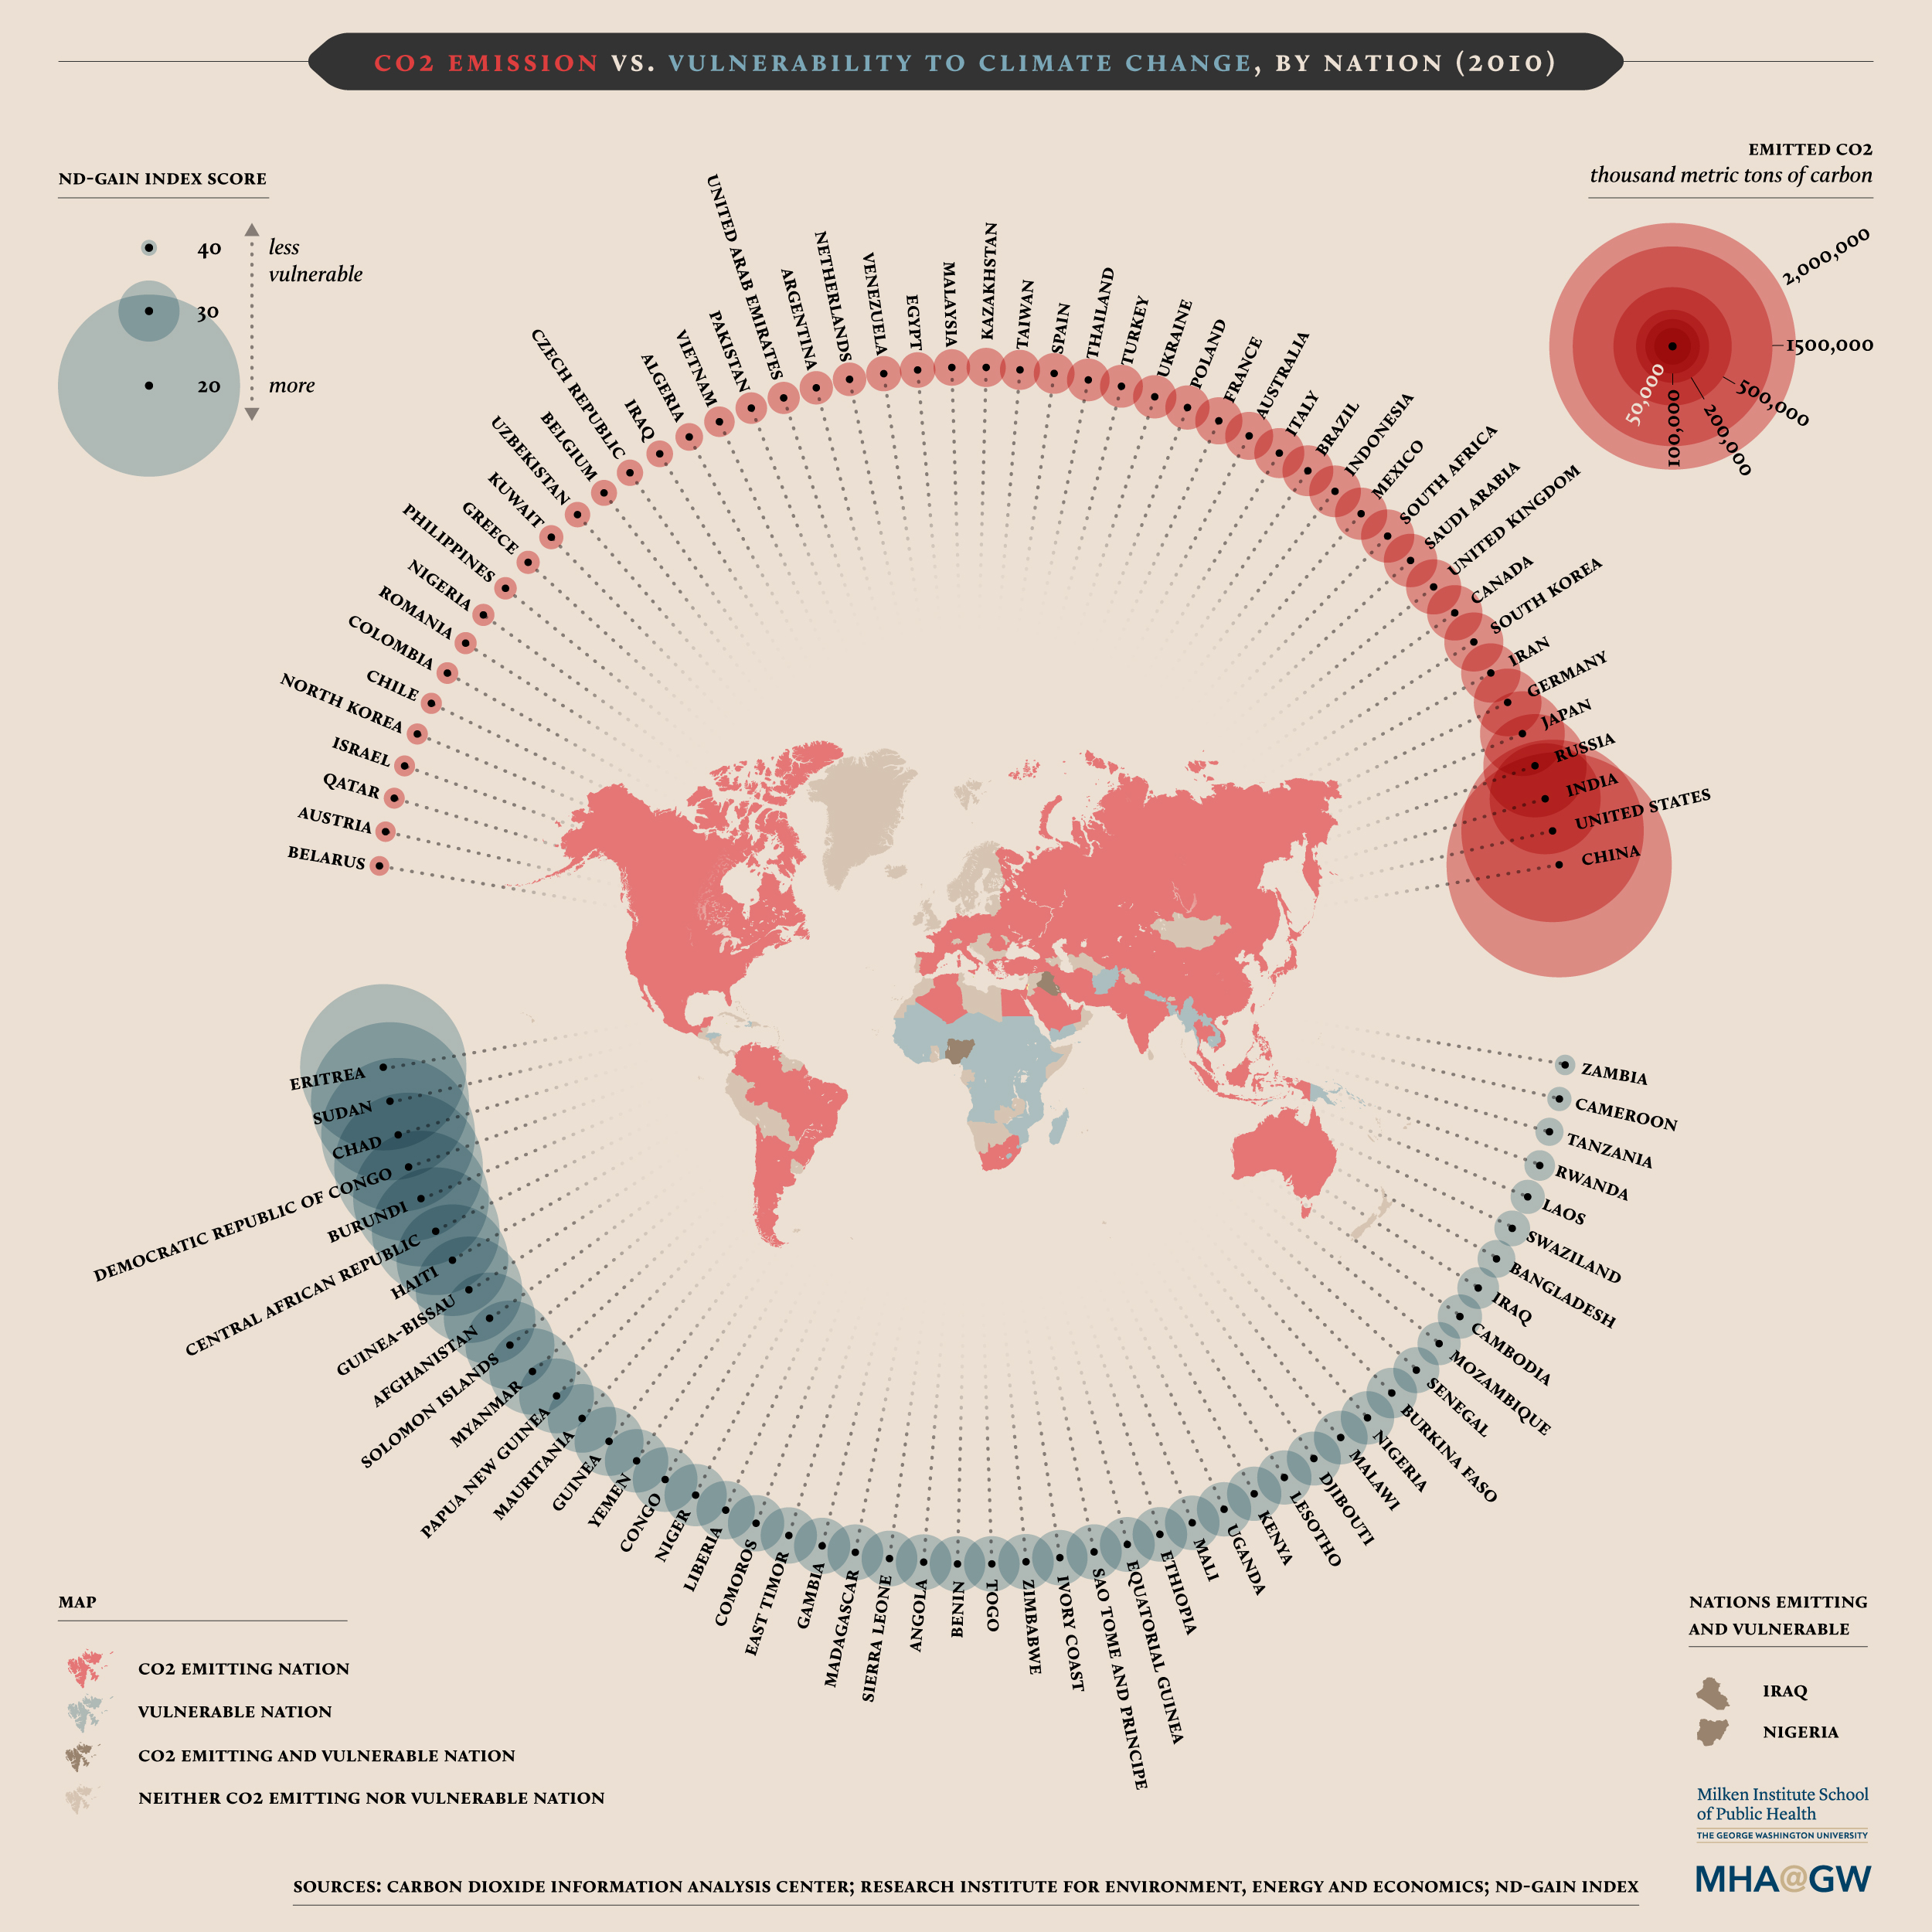 Data visualization showing the CO2 emission vs vulnerability to climate change by nation.